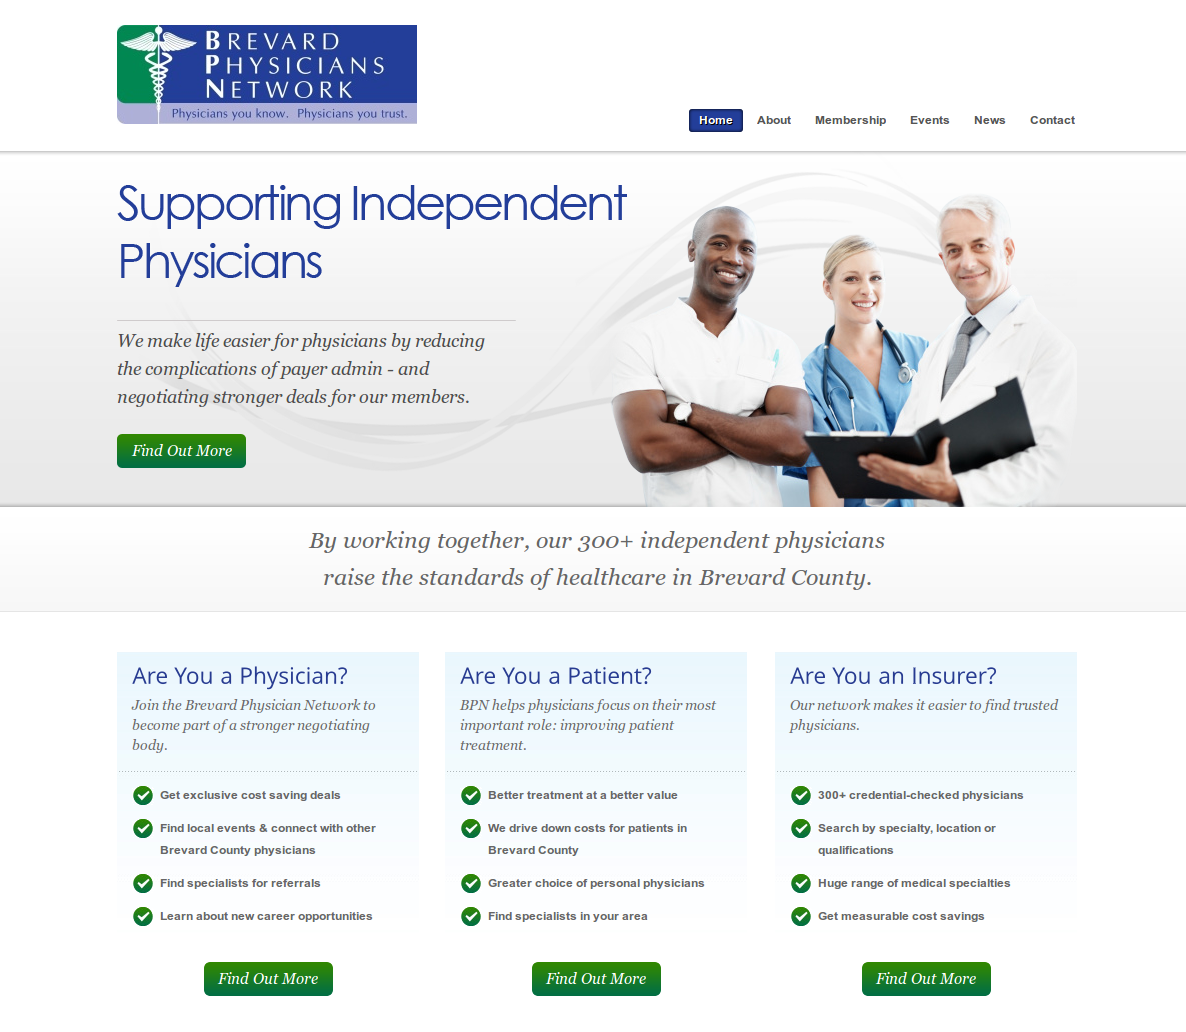 Brevard Physicians Network homepage